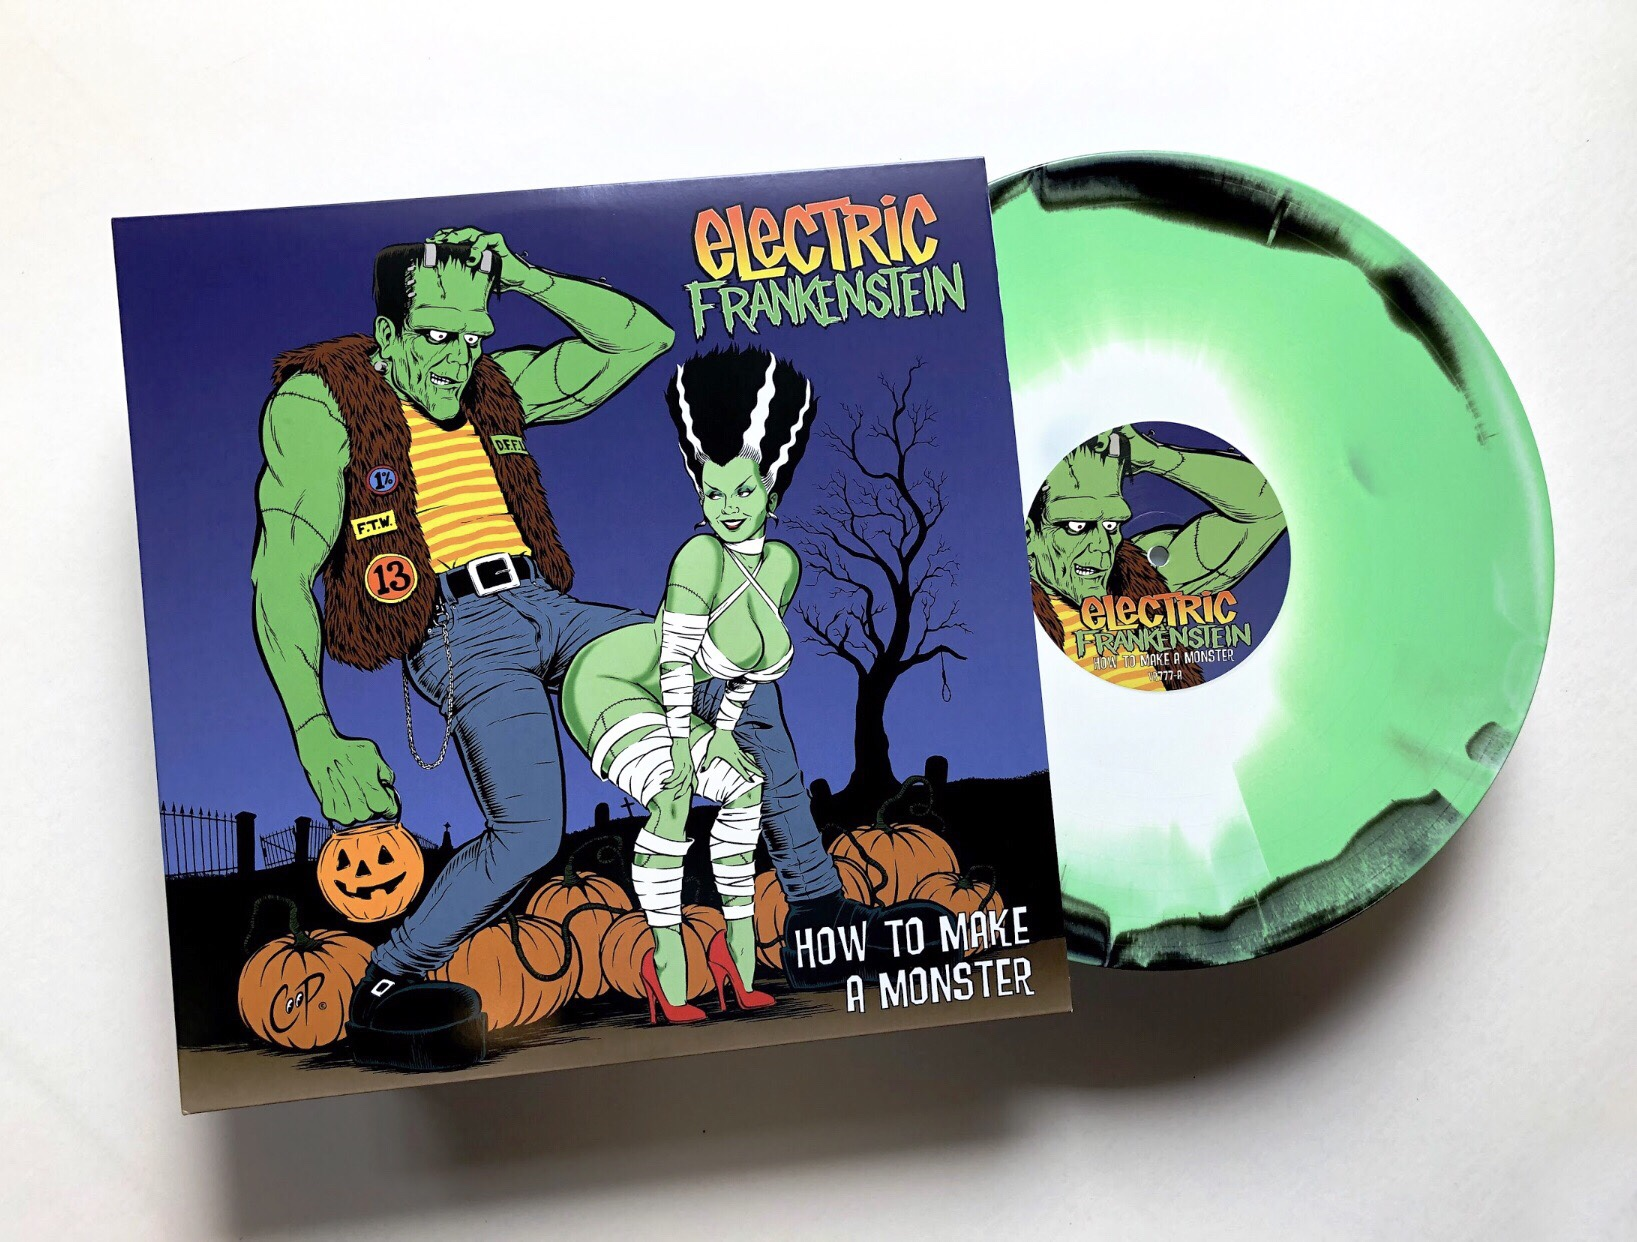 "ELECTRIC FRANKENSTEIN RE-ISSUE HOW TO MAKE A MONSTER - 20 Year Anniversary Remaster, Limited Edition Colored Vinyl with New Artwork and Extensive Liner NotesFull Album To Be Played Live In Its EntiretyThey never went away, but ELECTRIC FRANKENSTEIN is back celebrating the release of their 1999 masterpiece How To Make A Monster, with an all-new re-issue vinyl release. In addition to limited edition colored vinyl, the remastered album includes new artwork by friend and famed artist COOP, extensive liner notes by Joel Gausten with additional insights by Eddie Spaghetti (Supersuckers), Tony Reflex (Adolescents), Ace Von Johnson (Faster Pussycat), plus Captain Sensible (The Damned), a digital download and an 18″ x 24″ poster of COOP's 'Electric Bride.' The vinyl comes in limited quantities of black/white/green mix and orange/yellow mix and can be heard on all streaming platforms.""The re-release of How To Make A Monster was very important to us and we worked hard to make it something special for our fans,"" confides bass player Dan Canzonieri. ""It's hard to believe this record is 20 years old! We are celebrating this release by performing the album live in its entirety for the very first time in Europe starting in July. Our US fans will be able to see us play the album later this year and we will post dates as soon as they are confirmed. This includes around two return to Europe in the fall.""Originally released in 1999, the album was the band's first for Victory Records. Self-produced by ELECTRIC FRANKENSTEIN, How To Make A Monster is a cesspool of 'high octane punk rock, a blazing jam of stylishly low-slung rock and roll with attitude to the max,' as described by Metal Hammer. In addition to playing some of the most dynamic, ravenous, and menacing rock you've ever heard, ELECTRIC FRANKENSTEIN recognizes the importance of integrity – from giving proper nods to the architects of street-level rock (Iggy and the Stooges, AC/DC), to fiercely supporting indie labels, to their constant efforts to put fans first ahead of profit, and their non-stop mission of battering in-your-face rock to packed venues across the world.Listen to the album and order vinyl here.ELECTRIC FRANKENSTEIN ON TOUR 2019July 9th – Live at Lola – Grongingen, NetherlandsJuly 10th – Jugendhaus Schonau – Mannheim, GermanyJuly 11th – Wild At Heart – Berlin, GermanyJuly 12th – Monkeys Music Club – Hamburg, GermanyJuly 13th – SJOCK Festival – Gierle, BelgiumJuly 14th – Freak Show – Essen, GermanyJuly 15th – L'imposture – Lille, France"